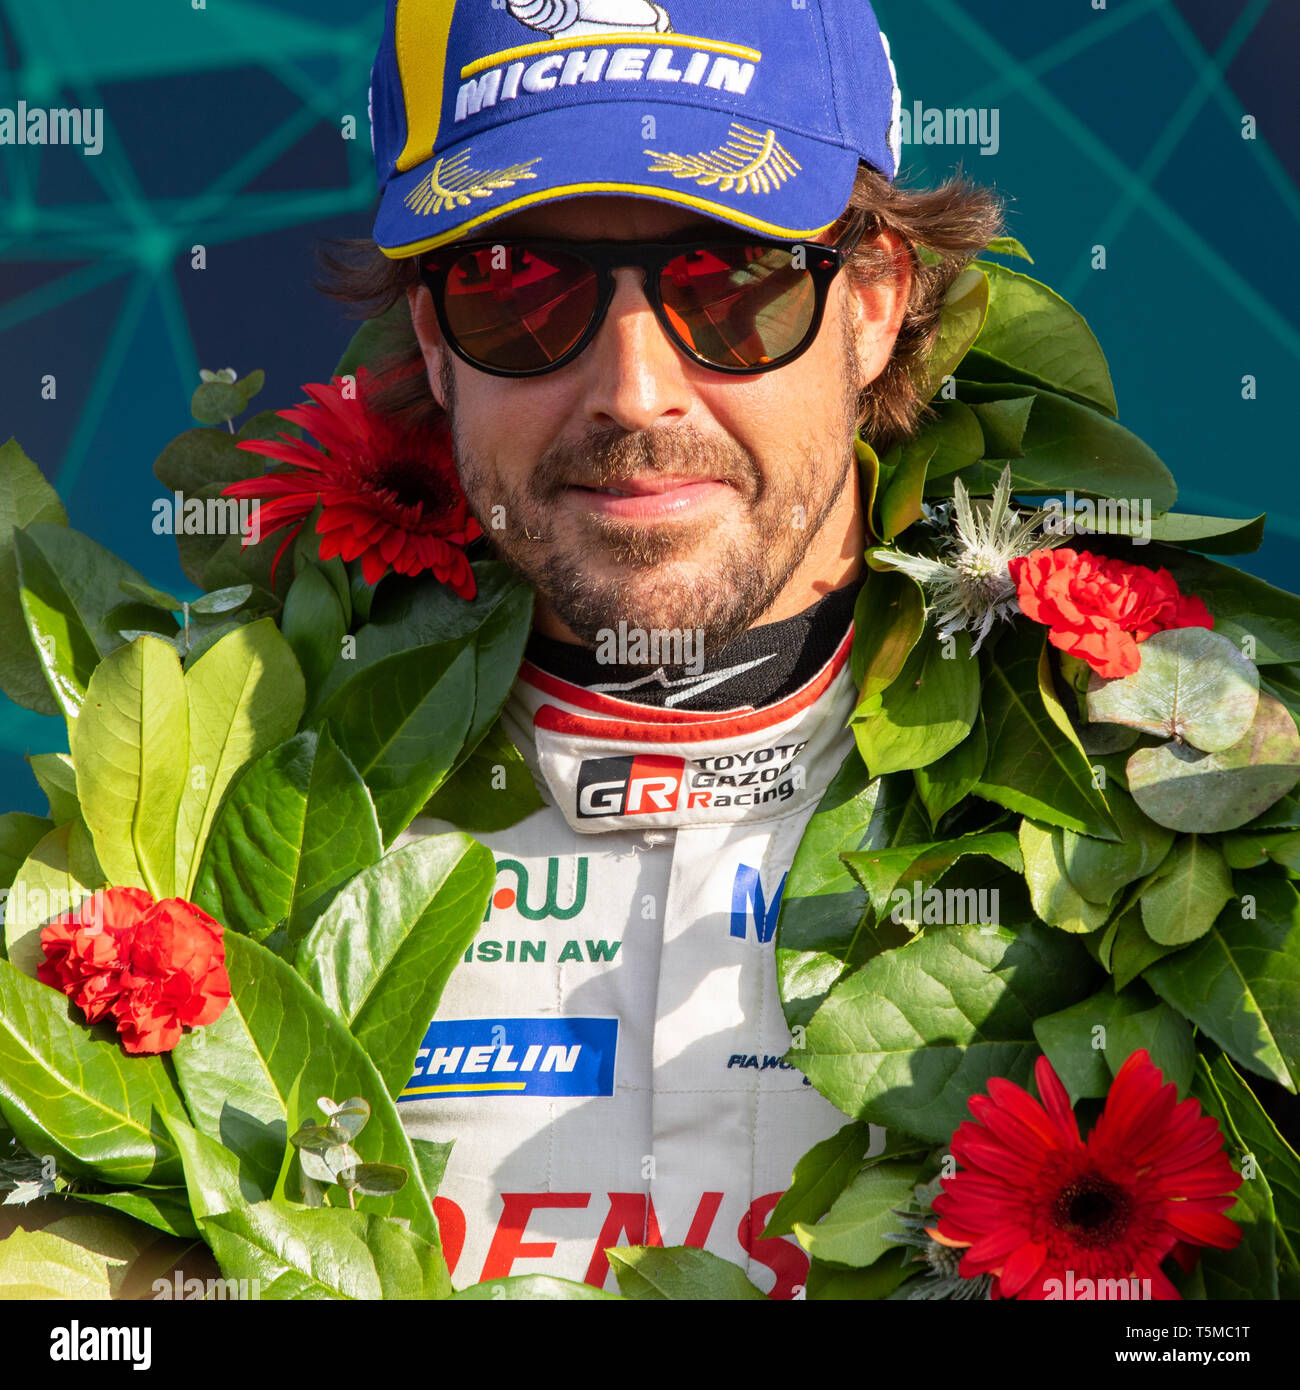 Fernando Alonso celebrates first place victory with Toyota Gazoo Racing at the 6 Hours of Silverstone, World Endurance Championship Superseason 2018 - Stock Image